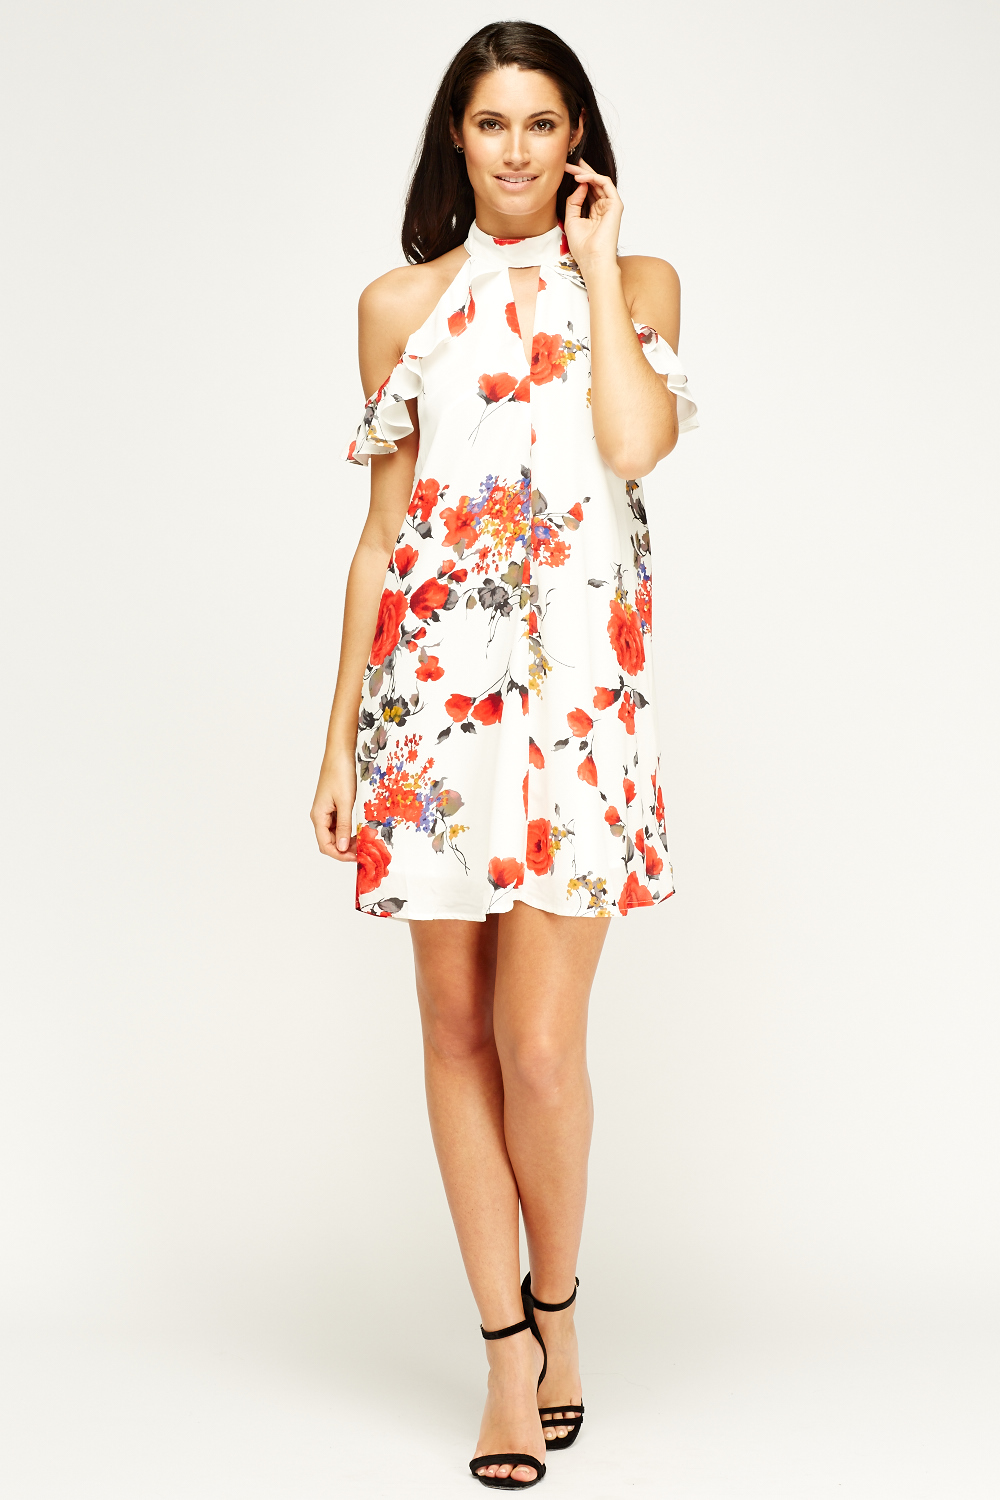 1ad49f71230 F & P Floral Print Summer Dress - Limited edition | Discount ...